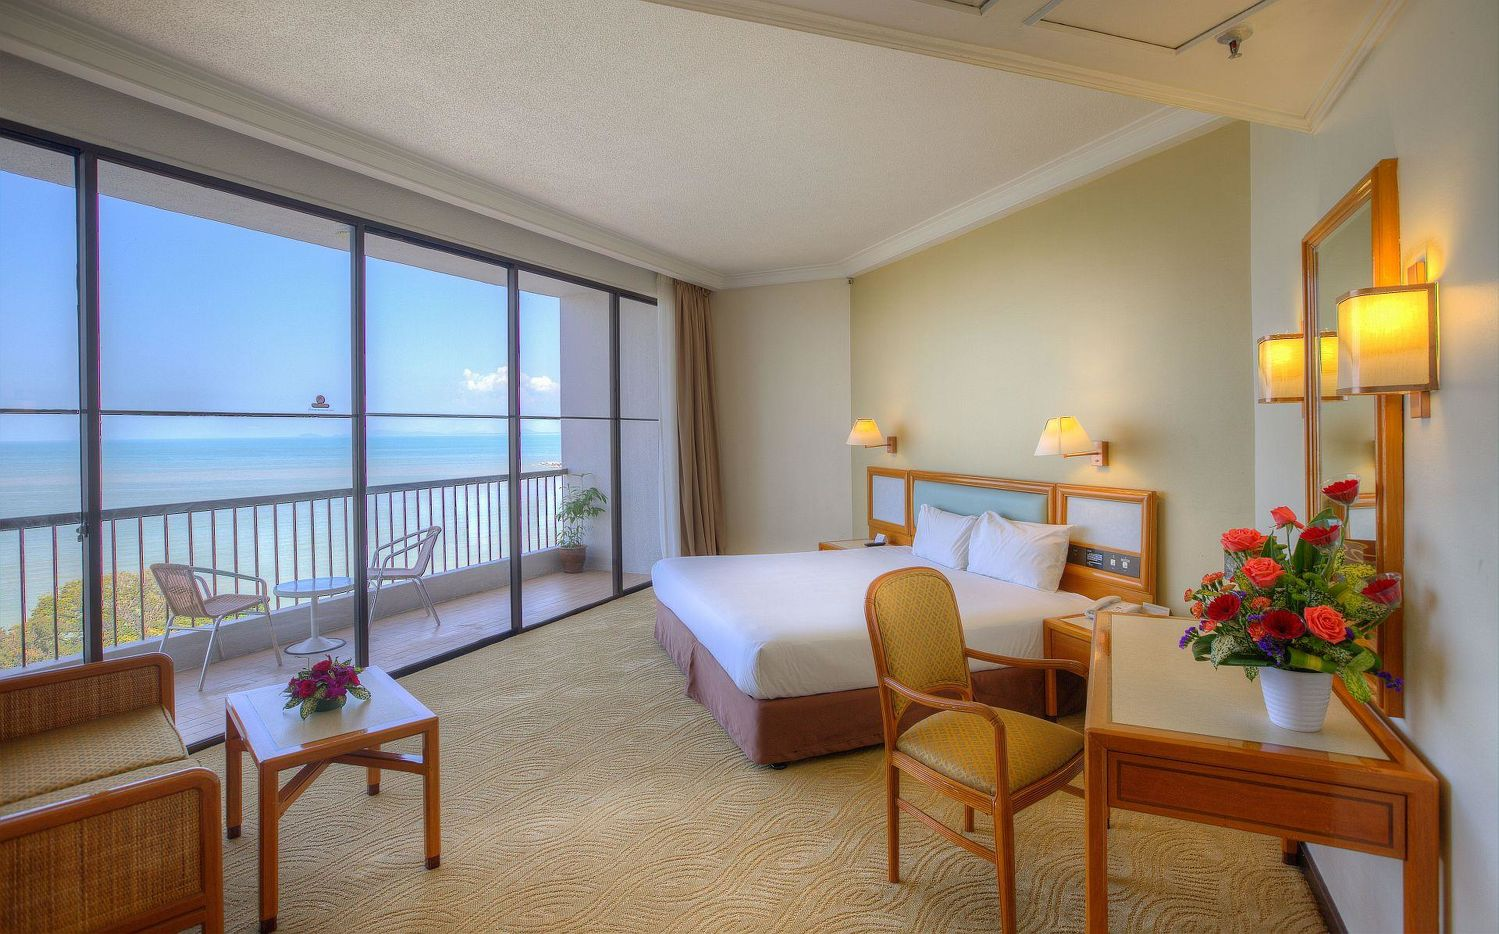 Copthorne Orchid Hotel penang - EDGEPROP SINGAPORE